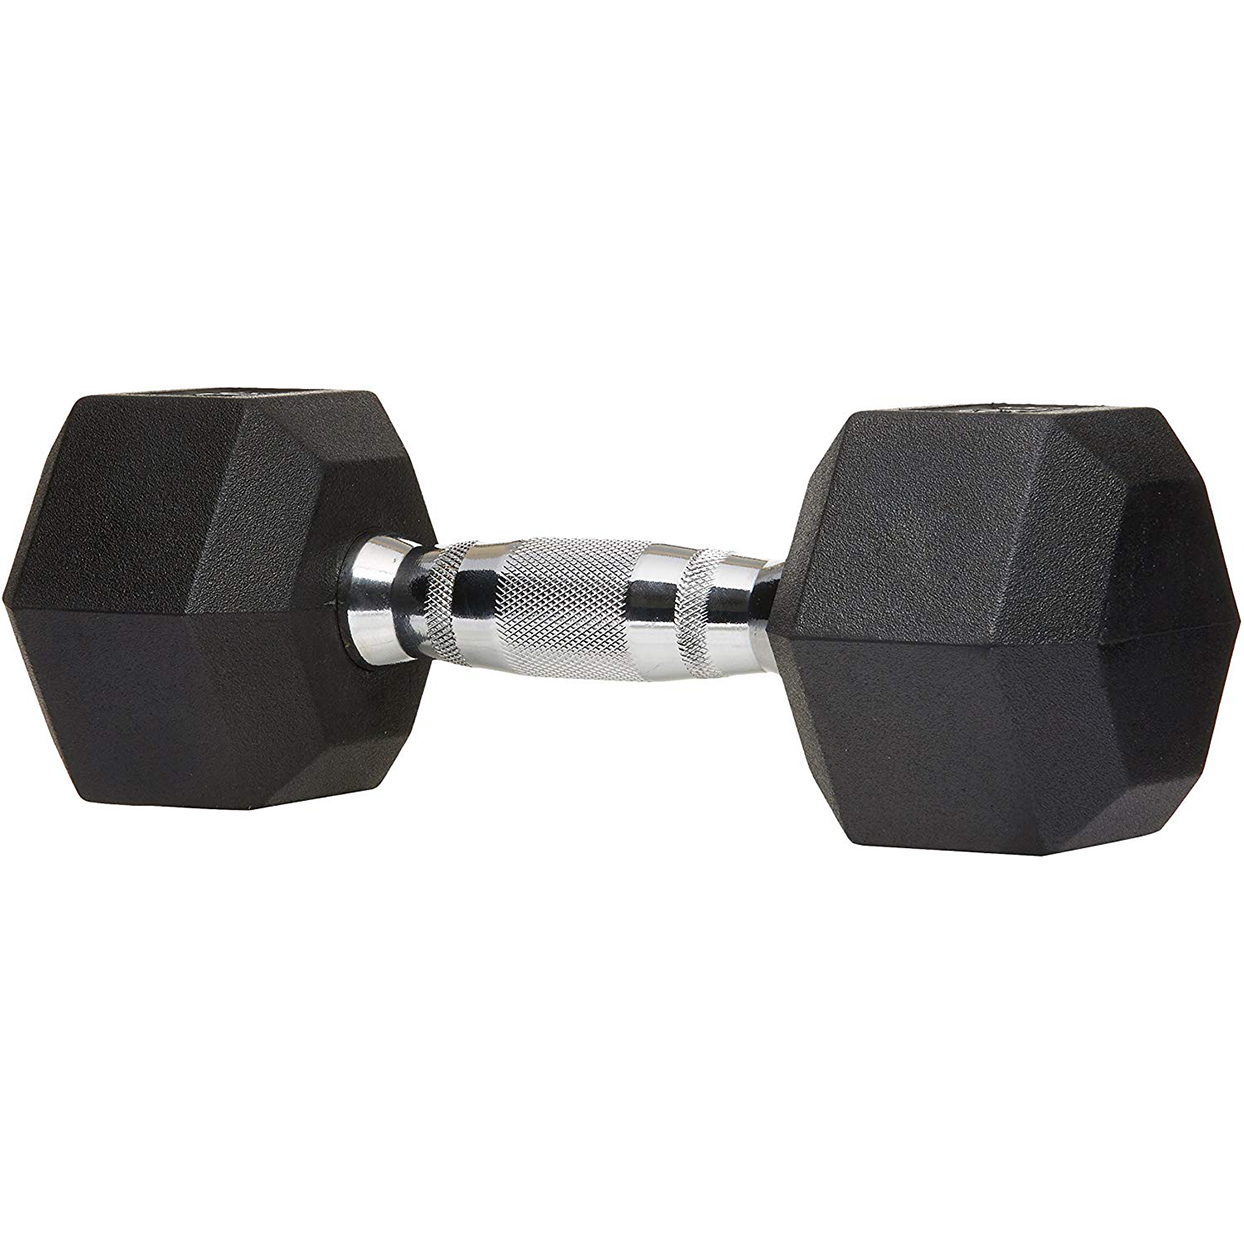 AmazonBasics Rubber Encased Hex Hand Dumbbell Weight